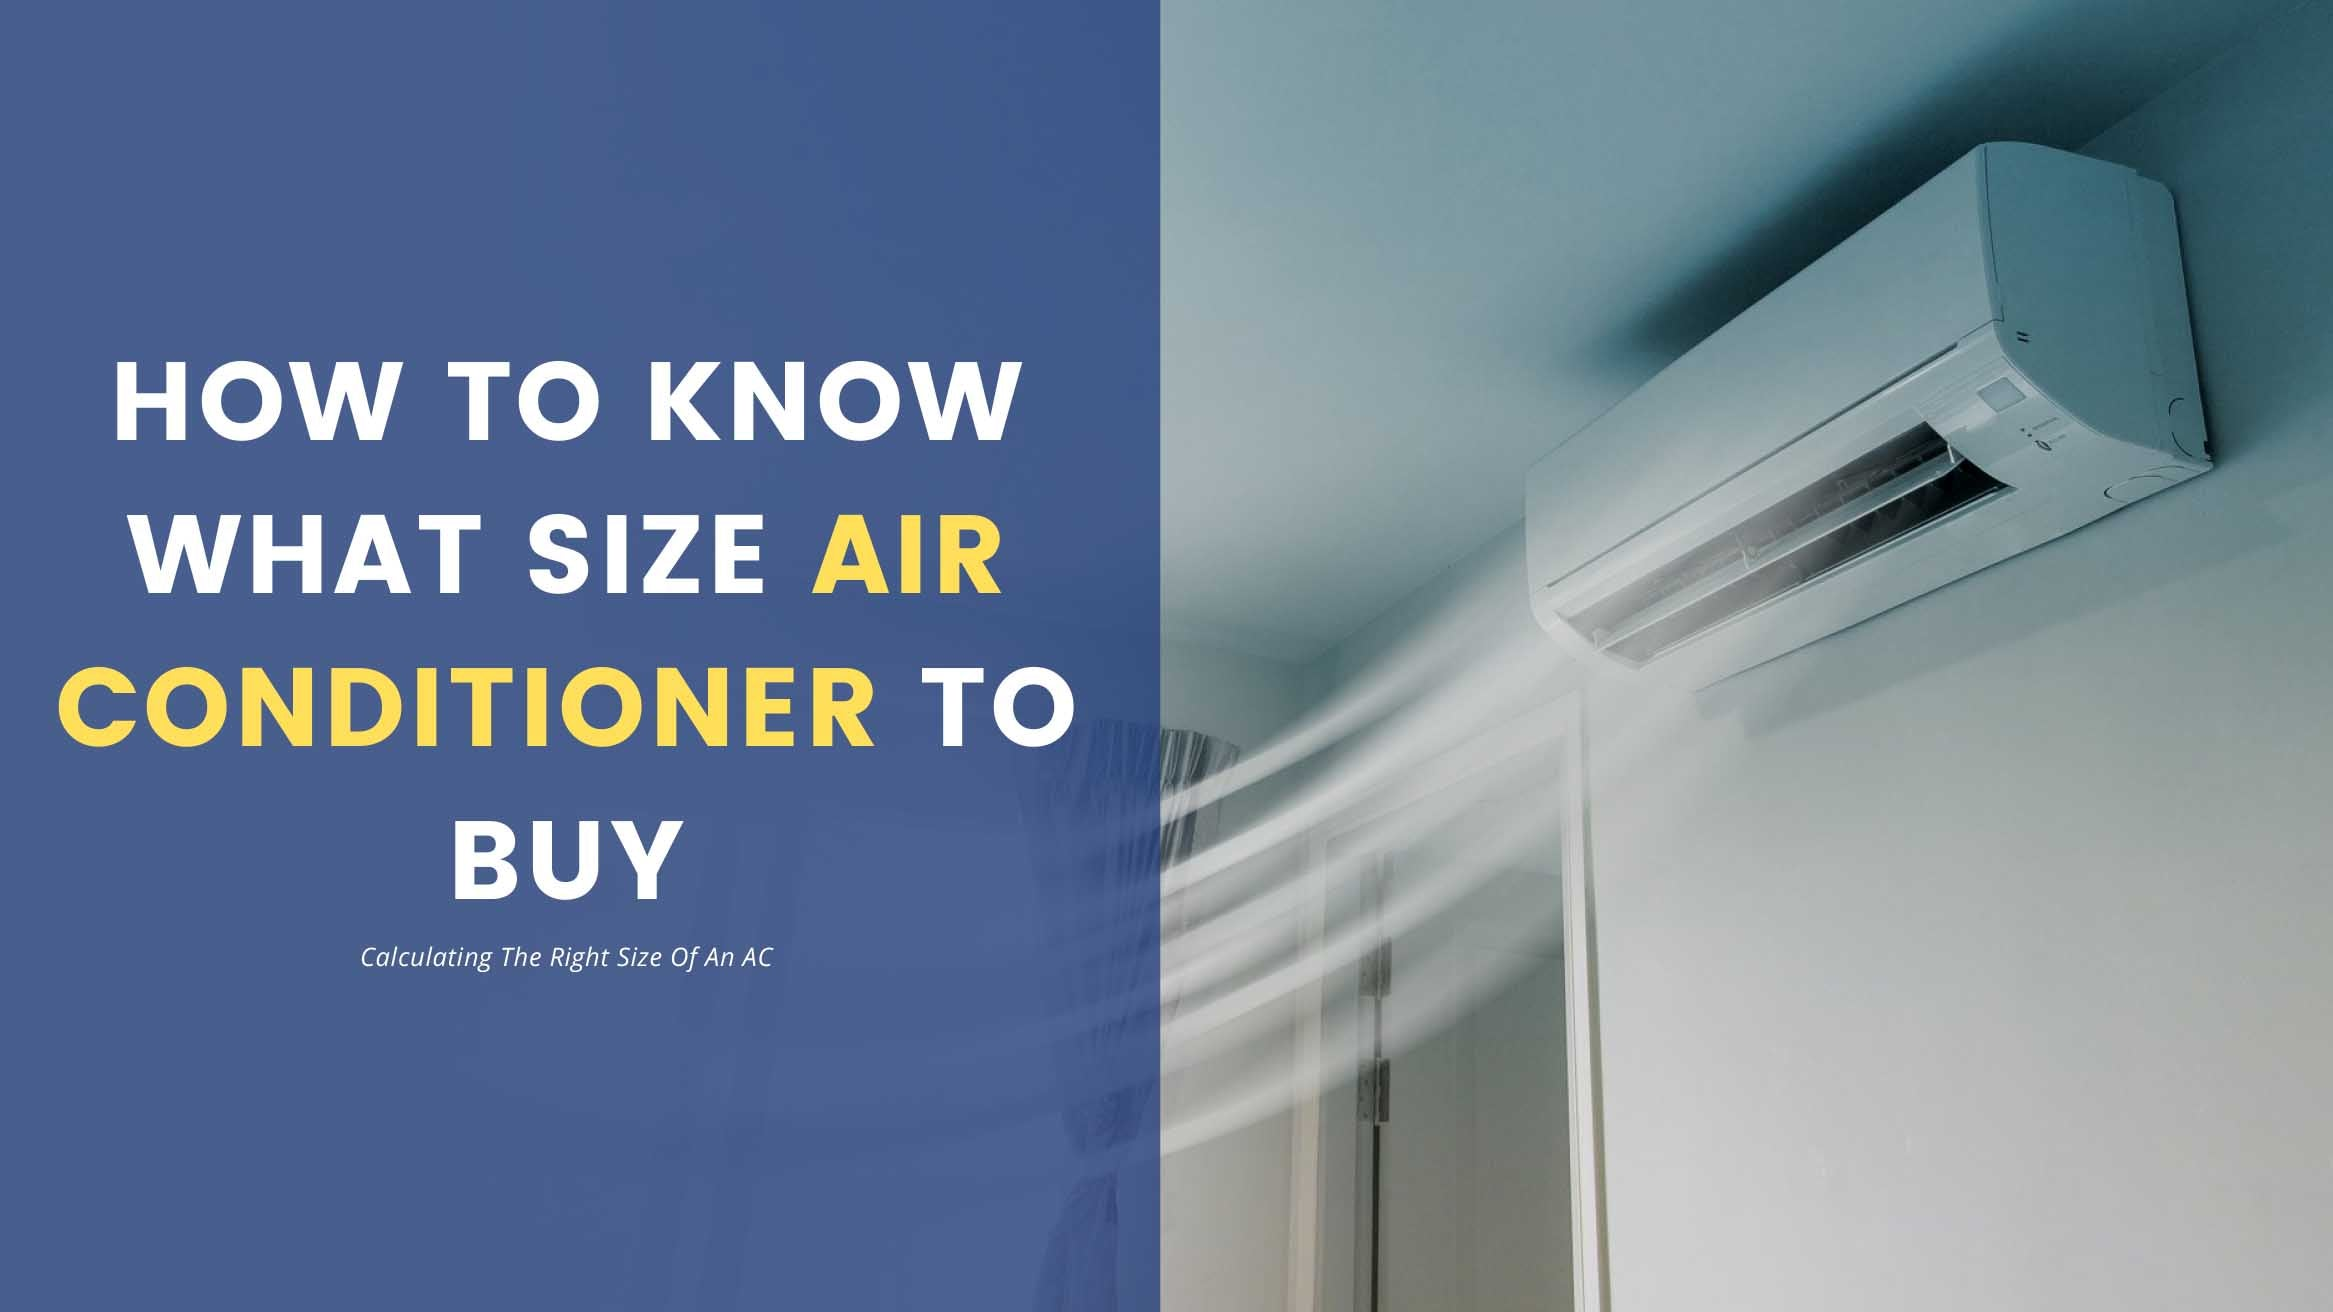 Air Conditioner: Calculating The Right Size Of An AC